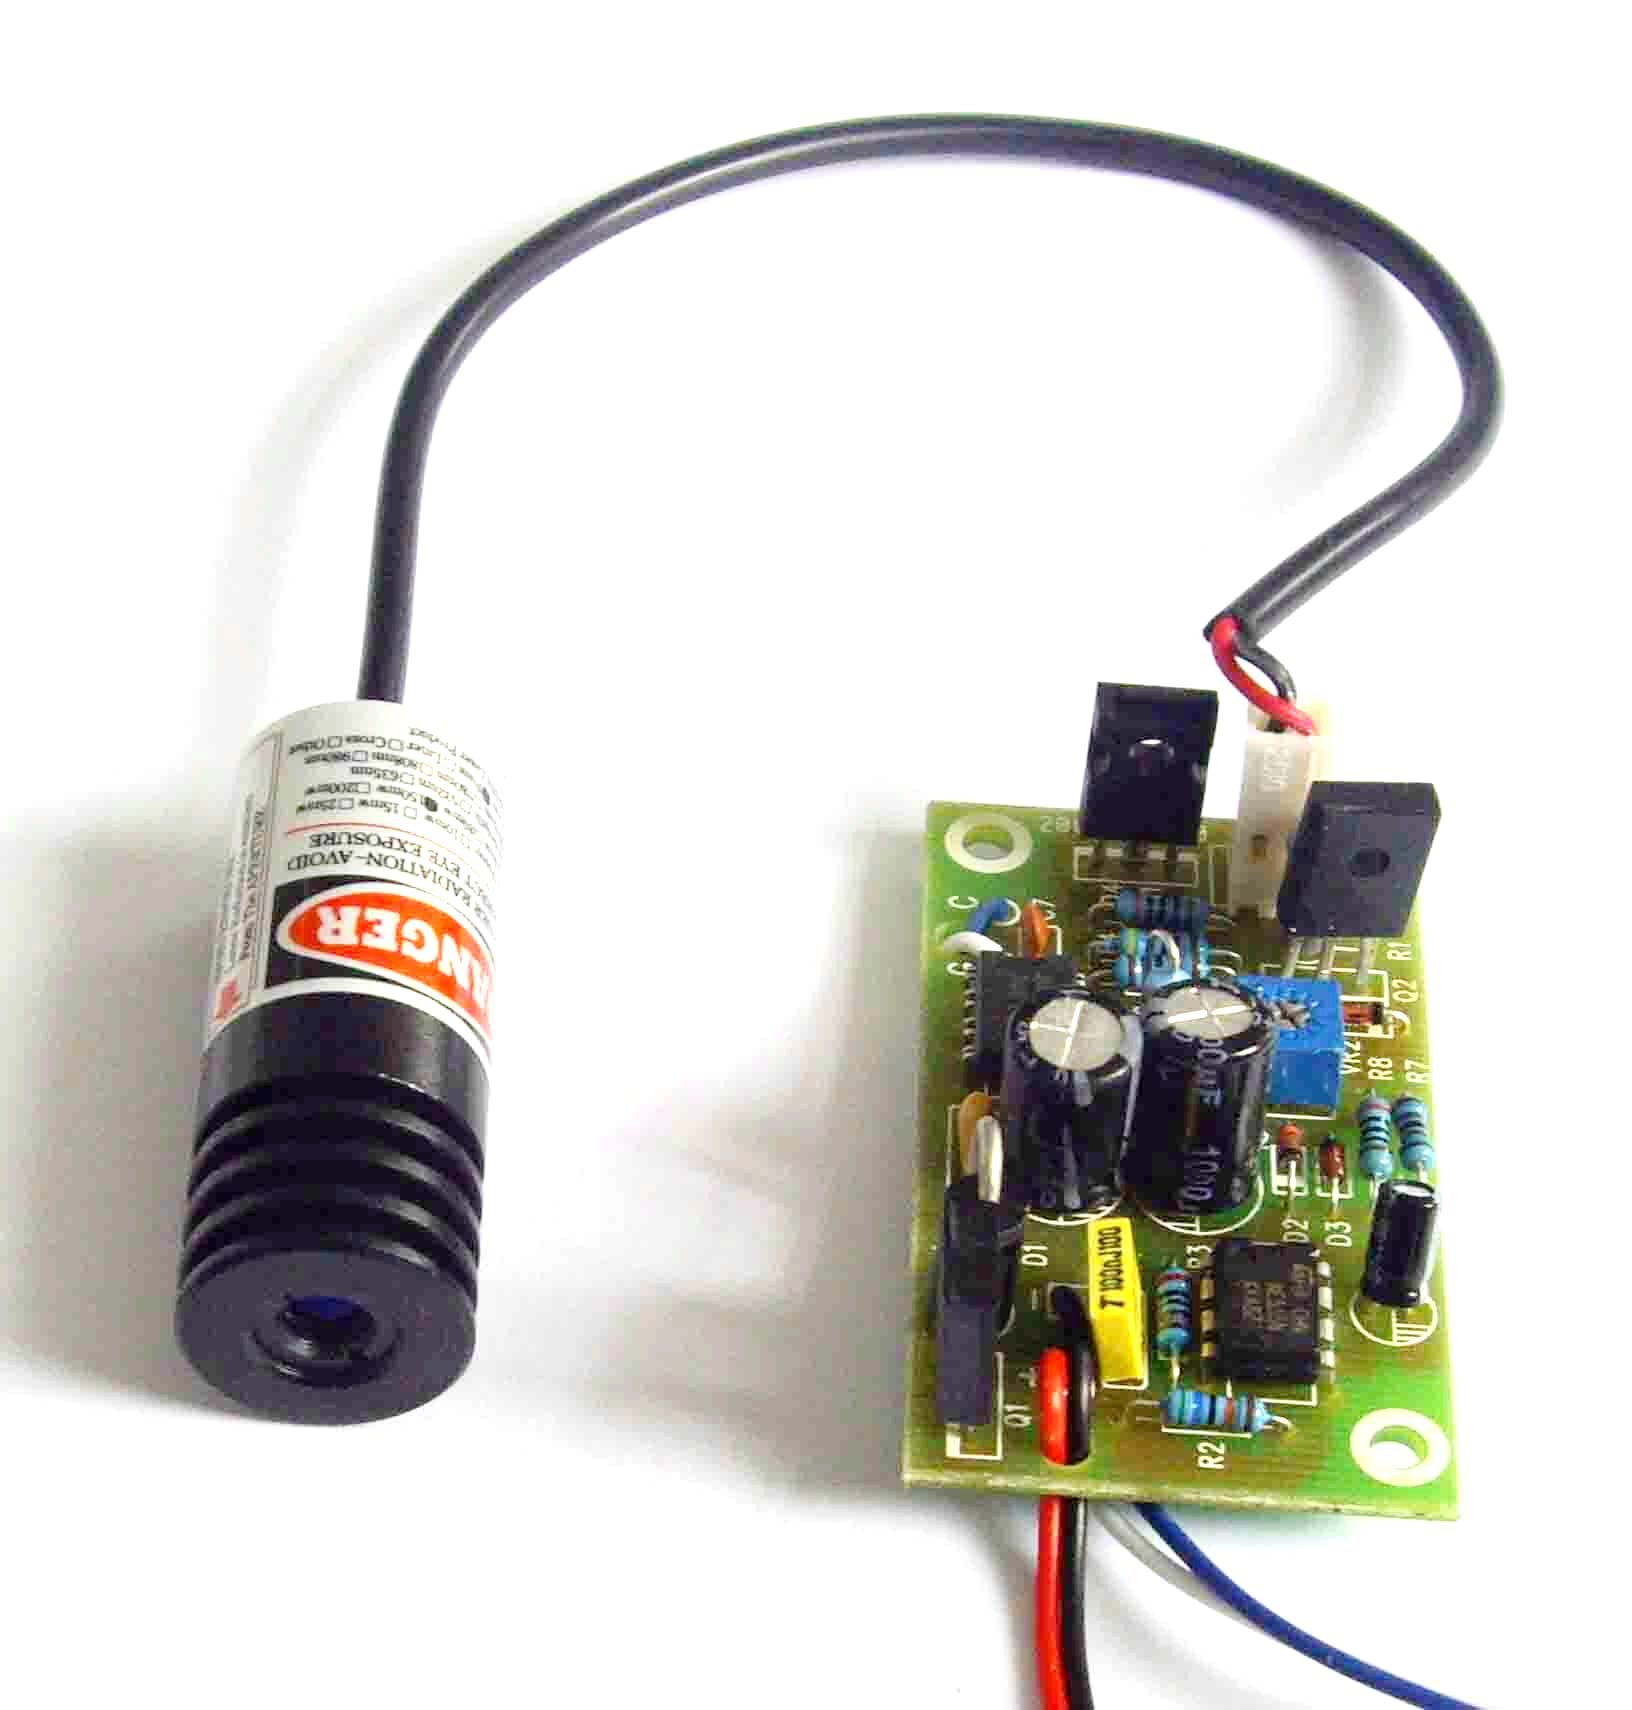 R150 650nm 150mw Red Laser Dot Module w/ 5.0VDC Driver out &18x45mm